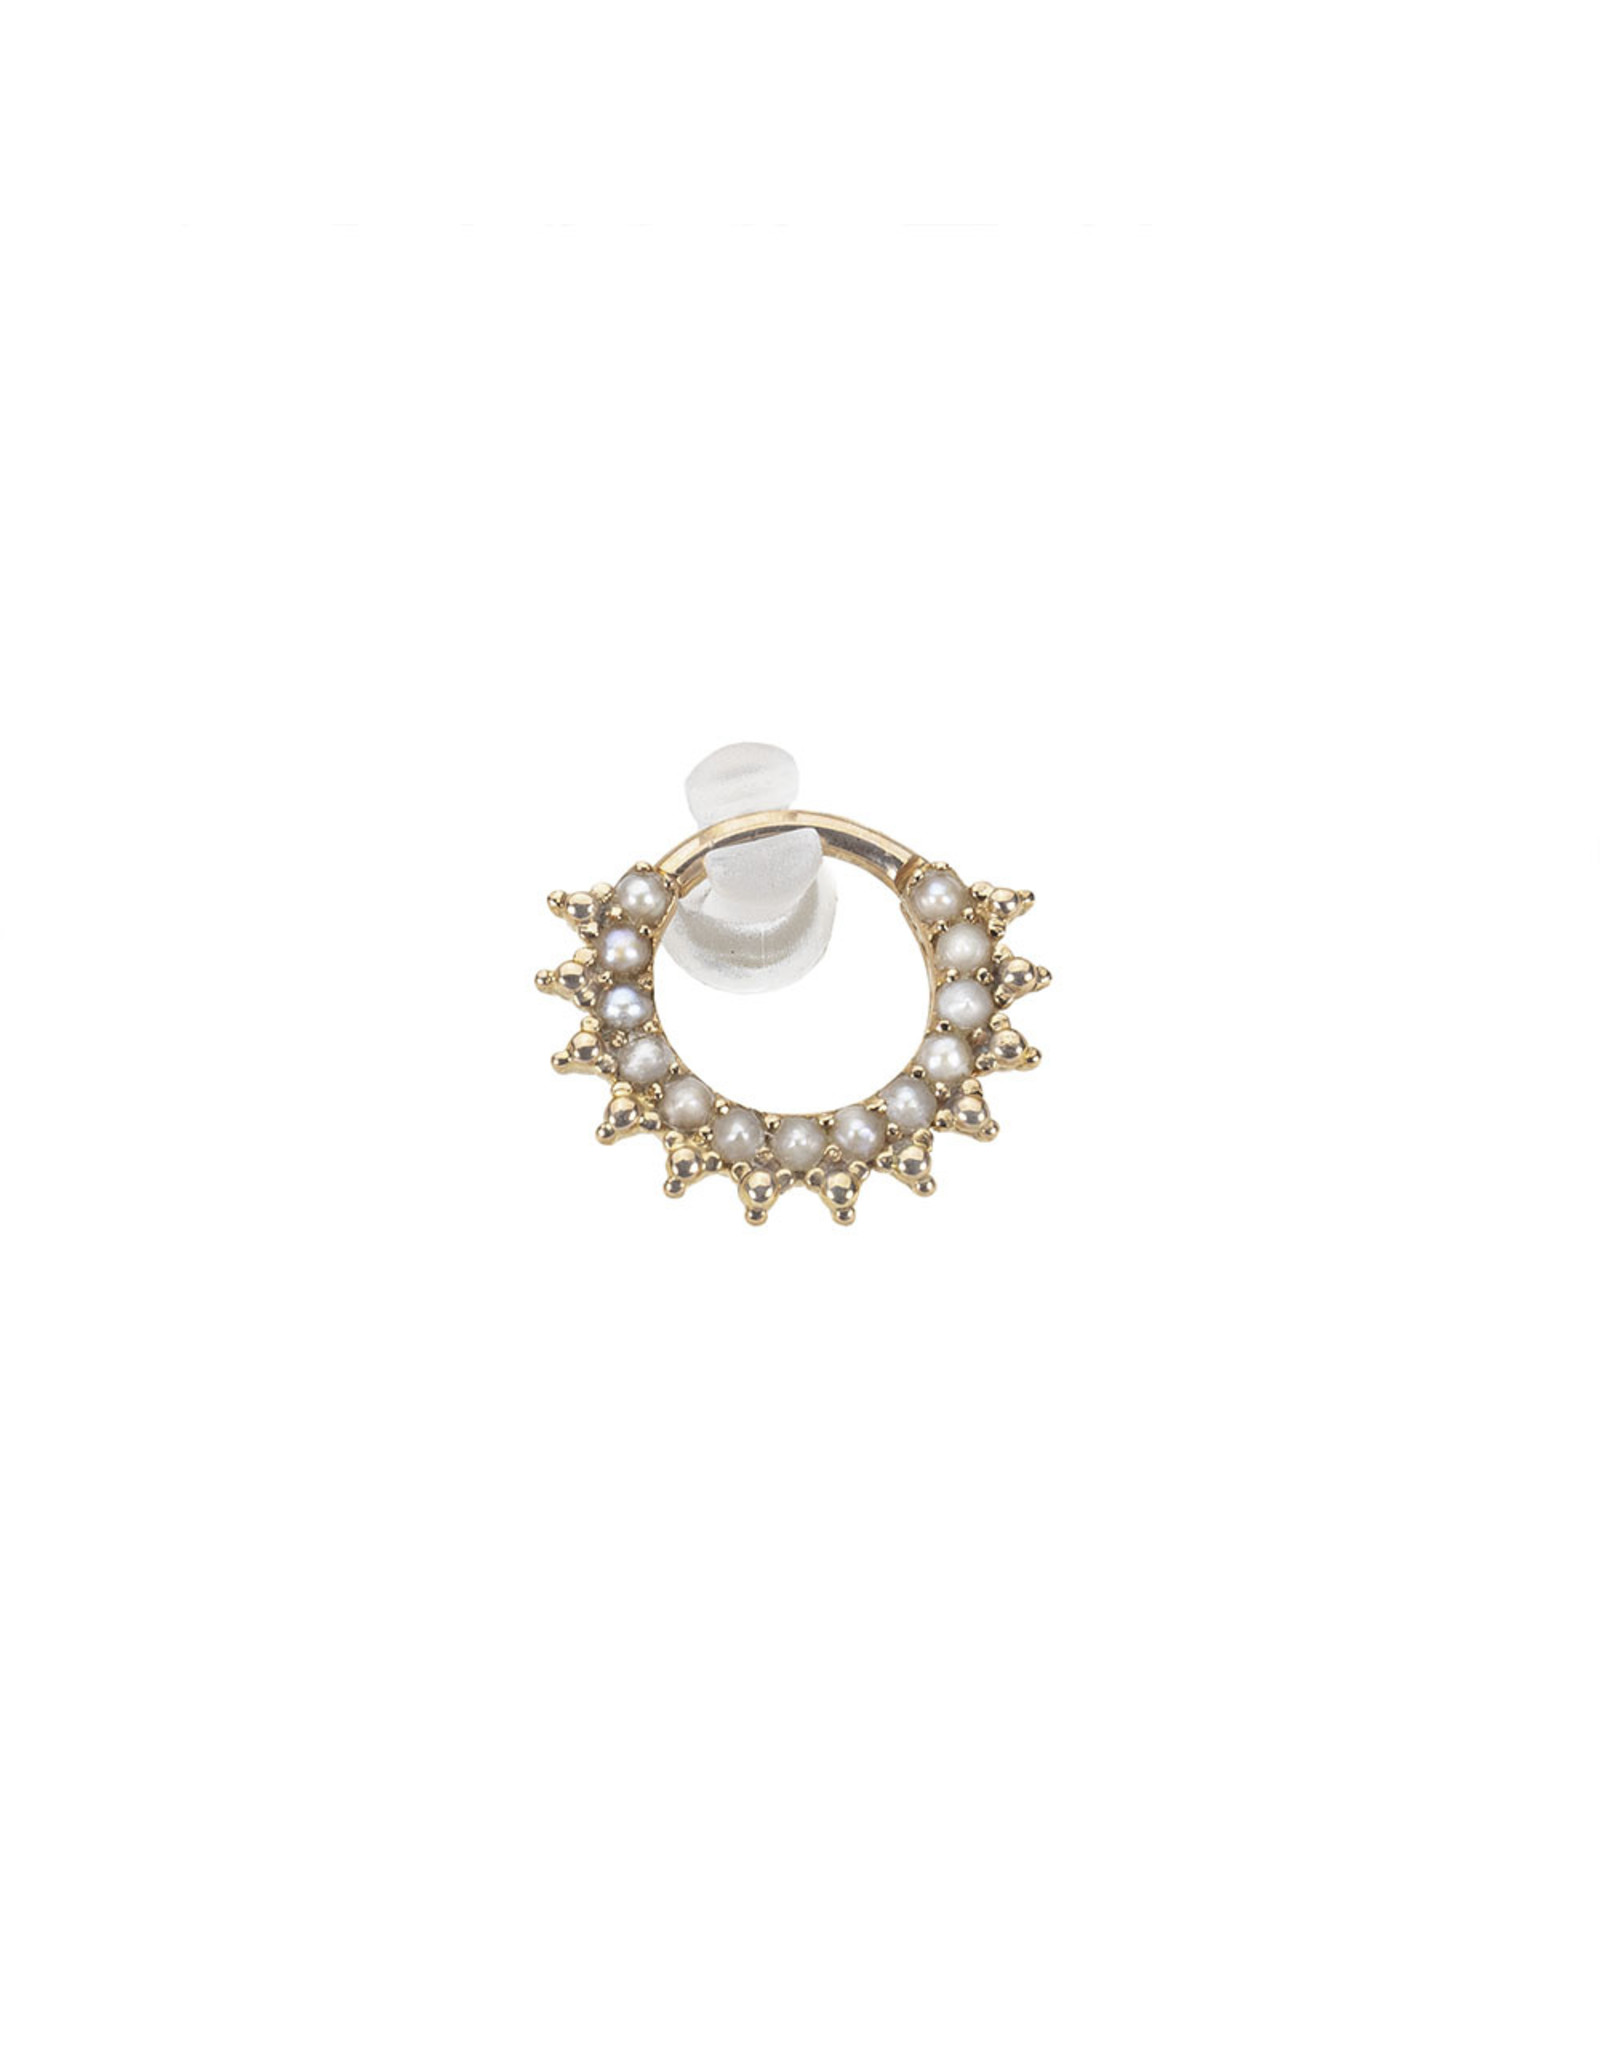 """BVLA BVLA 16g 5/16 rose gold """"Kolo"""" clicker with 13x 1.5 white pearls and gold bead accents"""